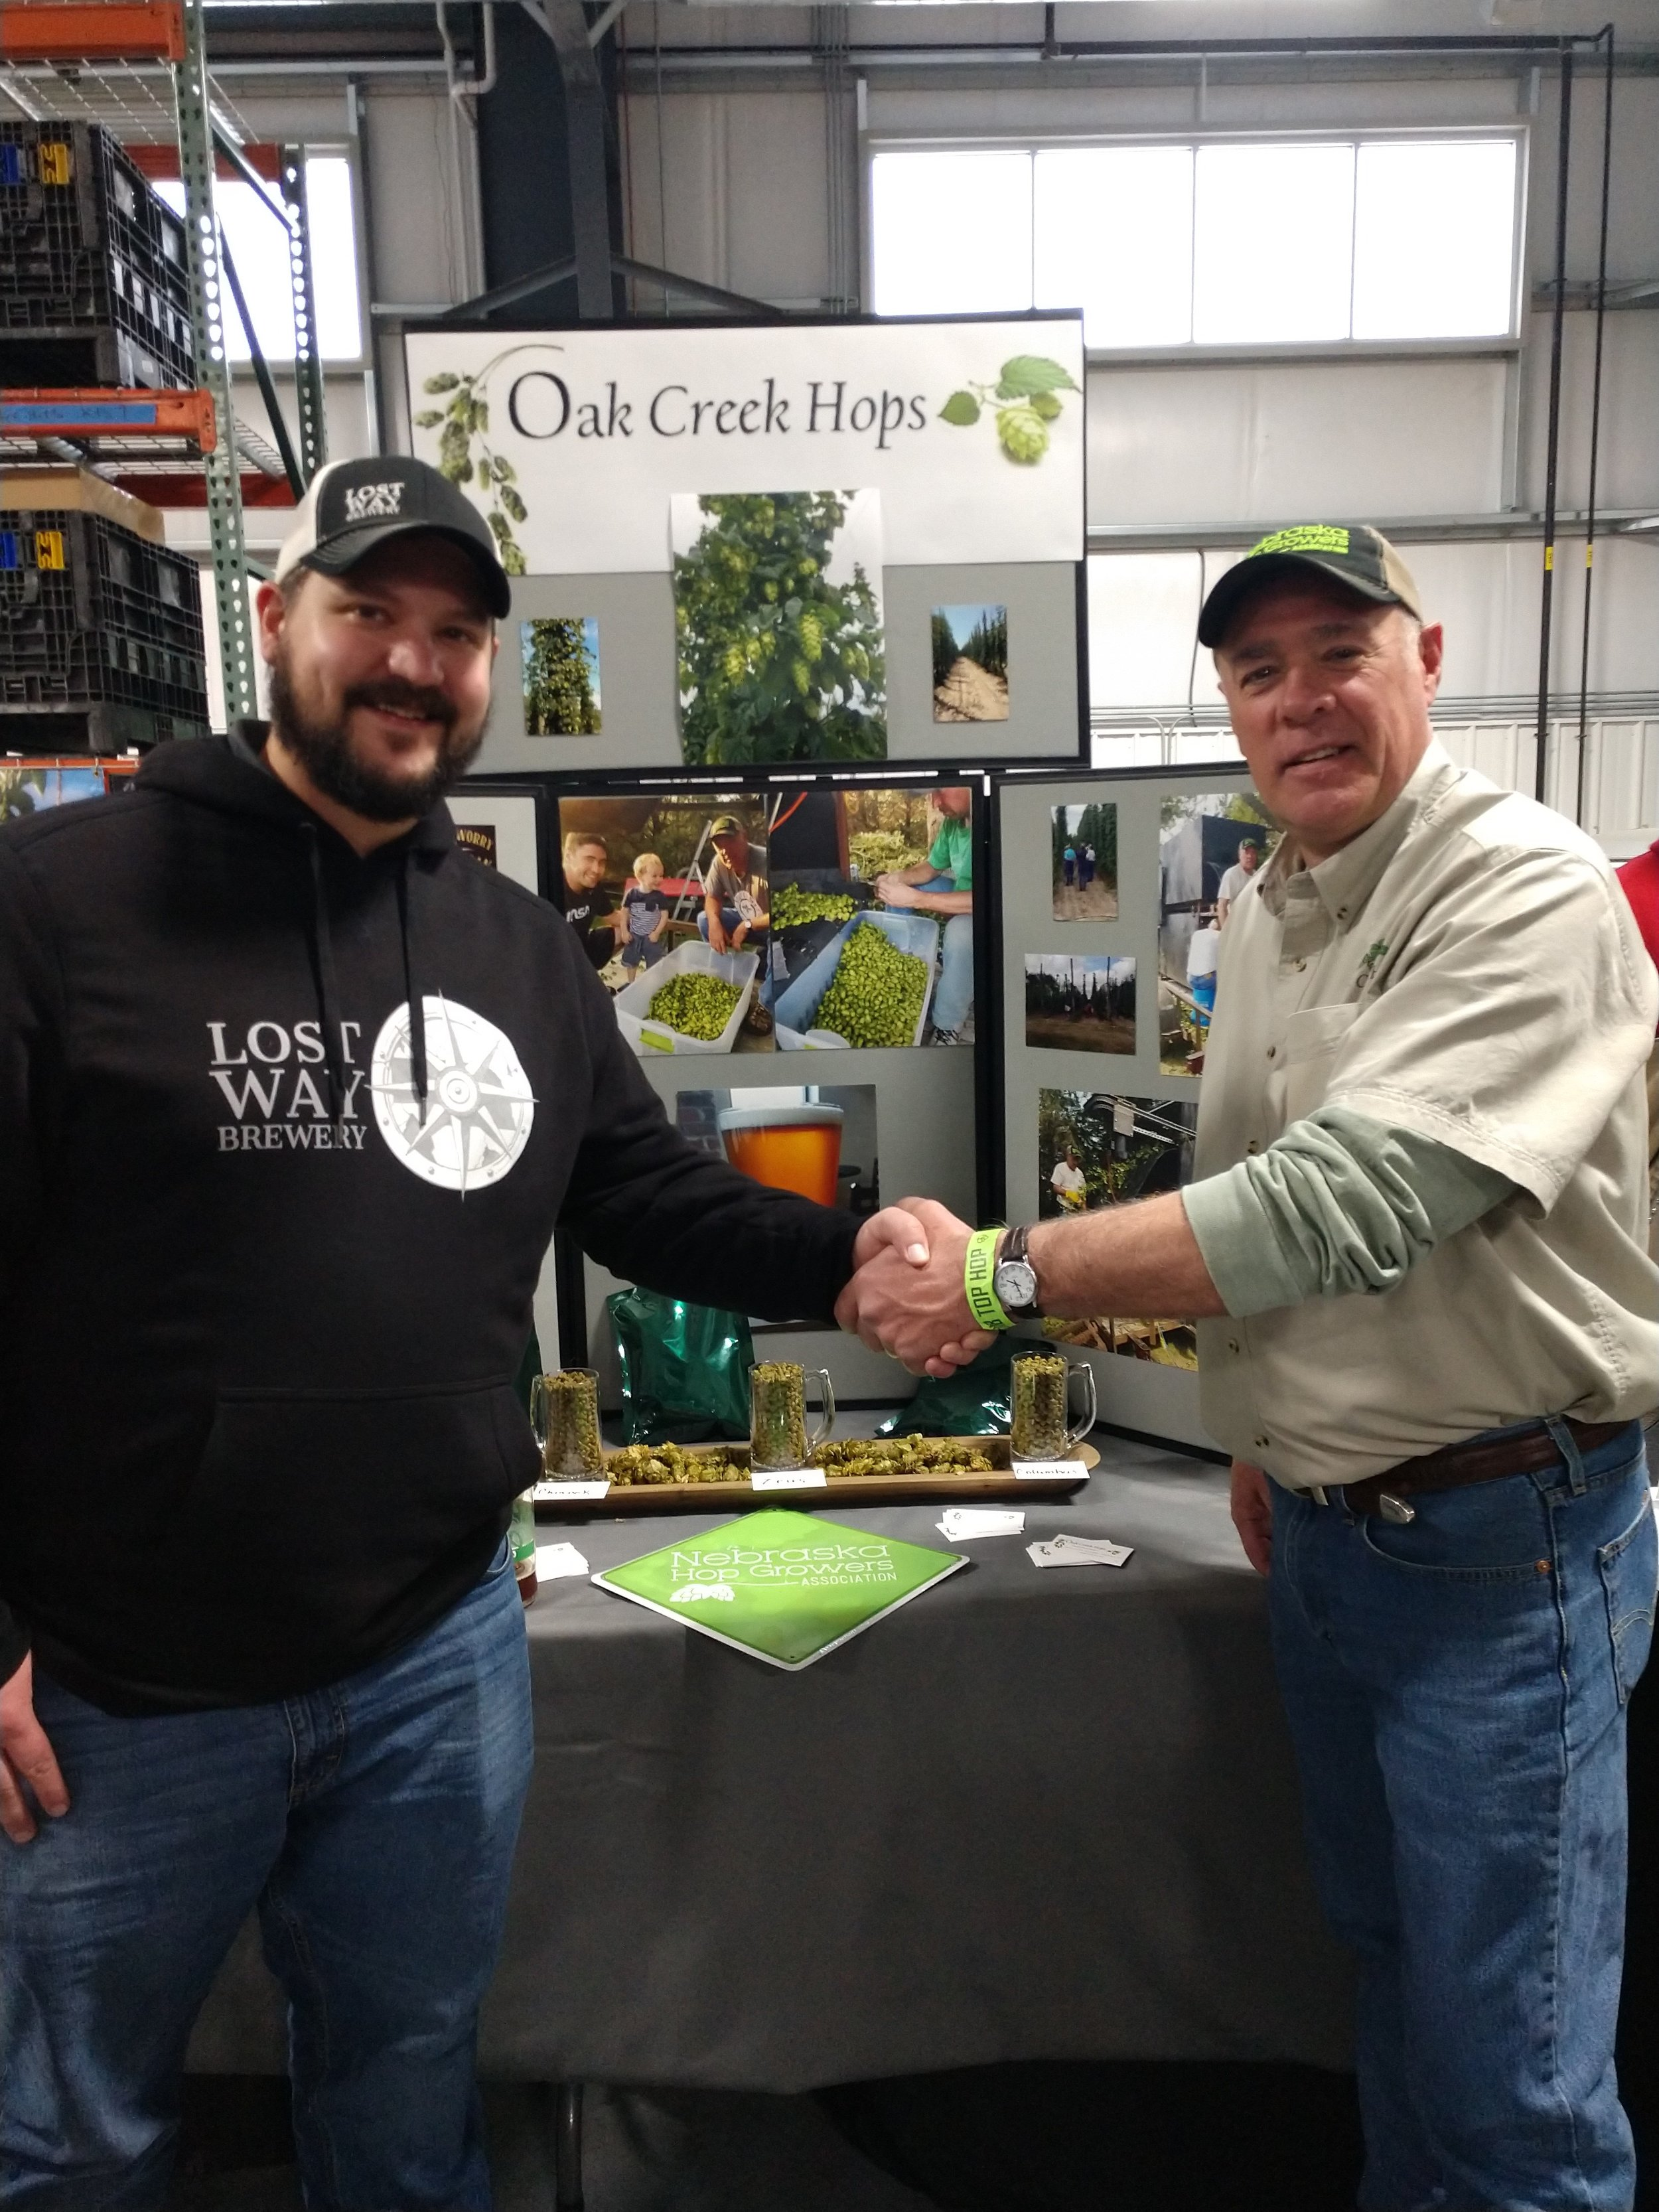 2018 Top Hop - Jason Hines (Lost Way Brewery, Holdrege, NE) & Dave Gleason